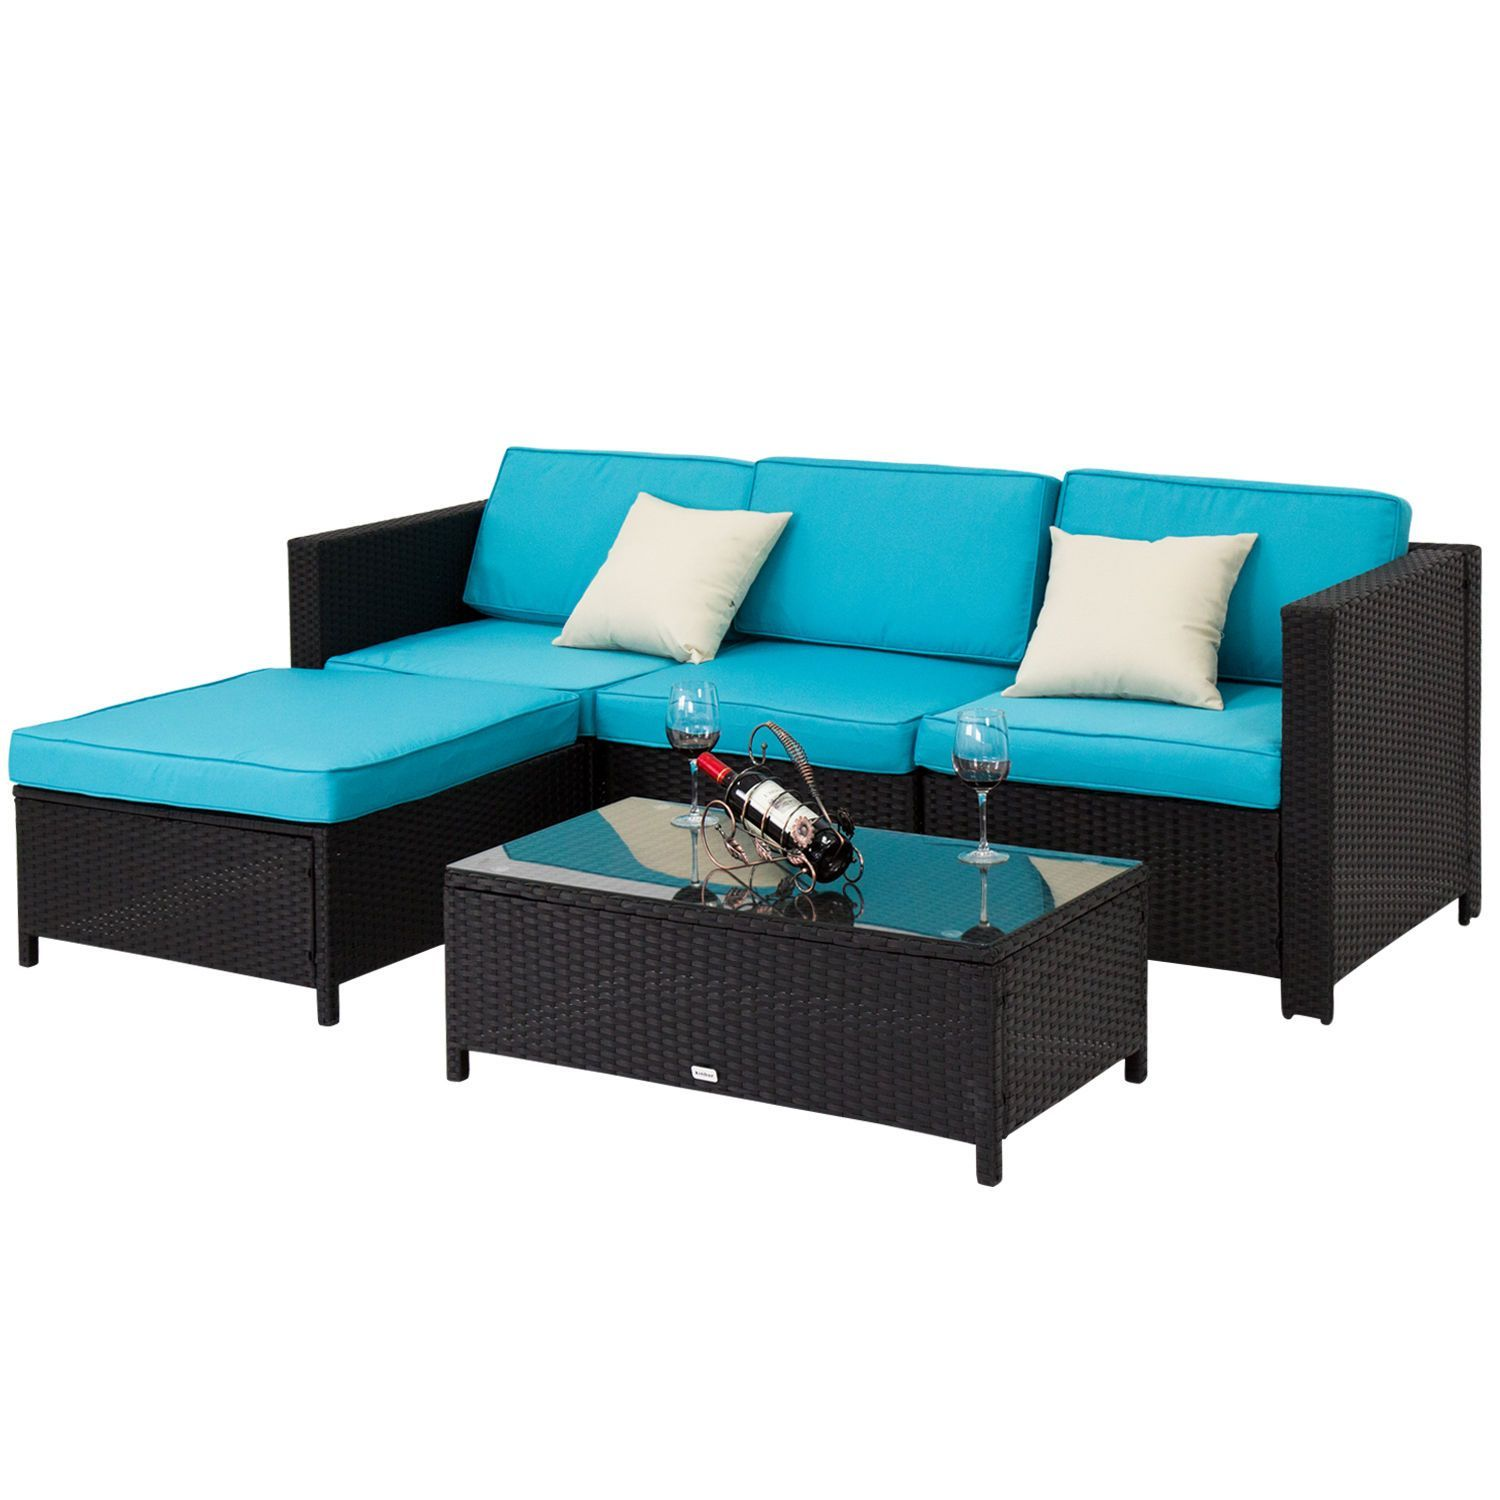 Nice pcs pe rattan wicker patio couch furnishings set outside